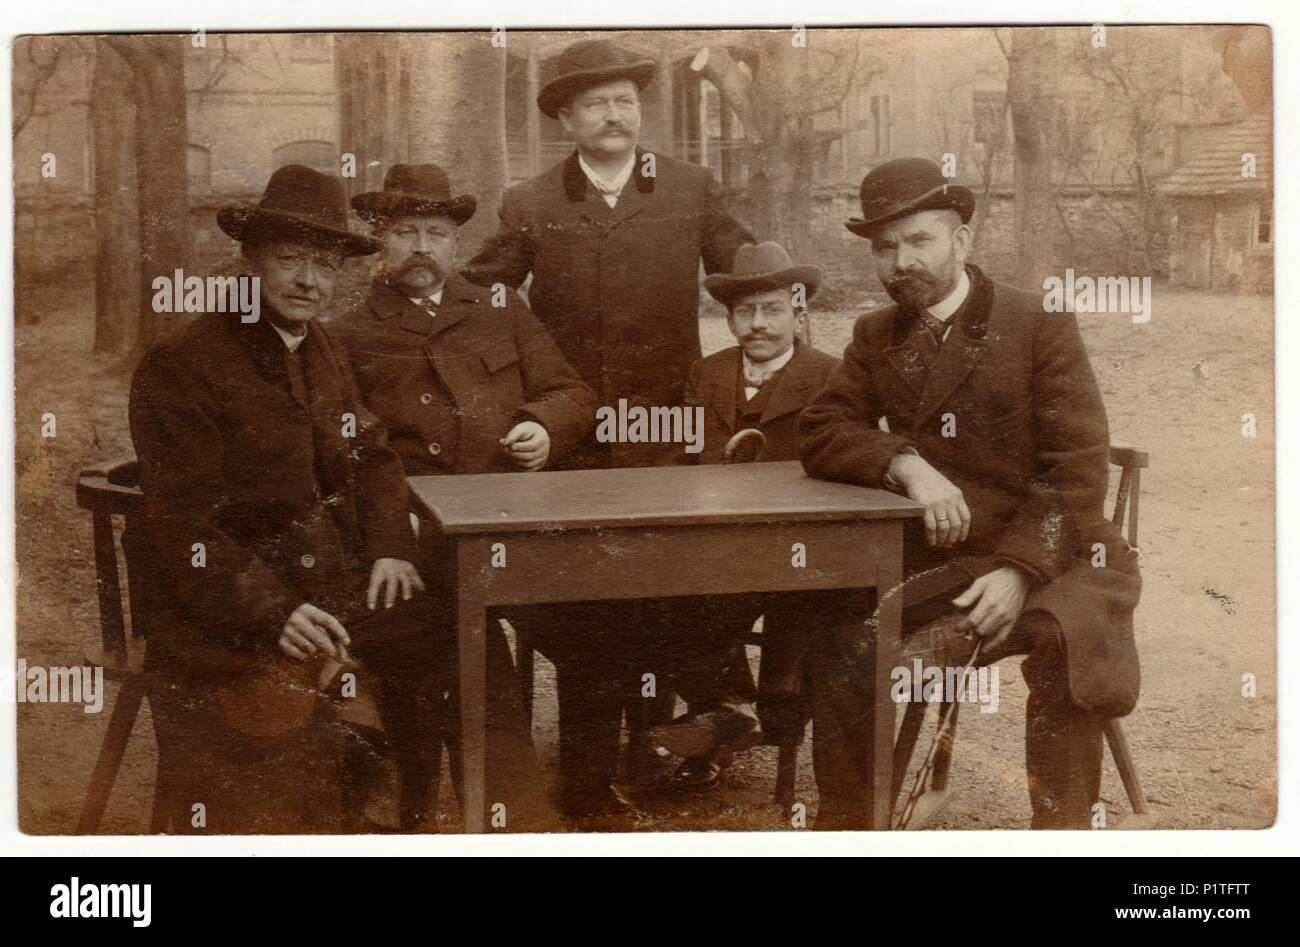 GERMANY - APRIL 14, 1907 Vintage photo shows men wear bowlers and sit at the table. Retro black & white photography. - Stock Image